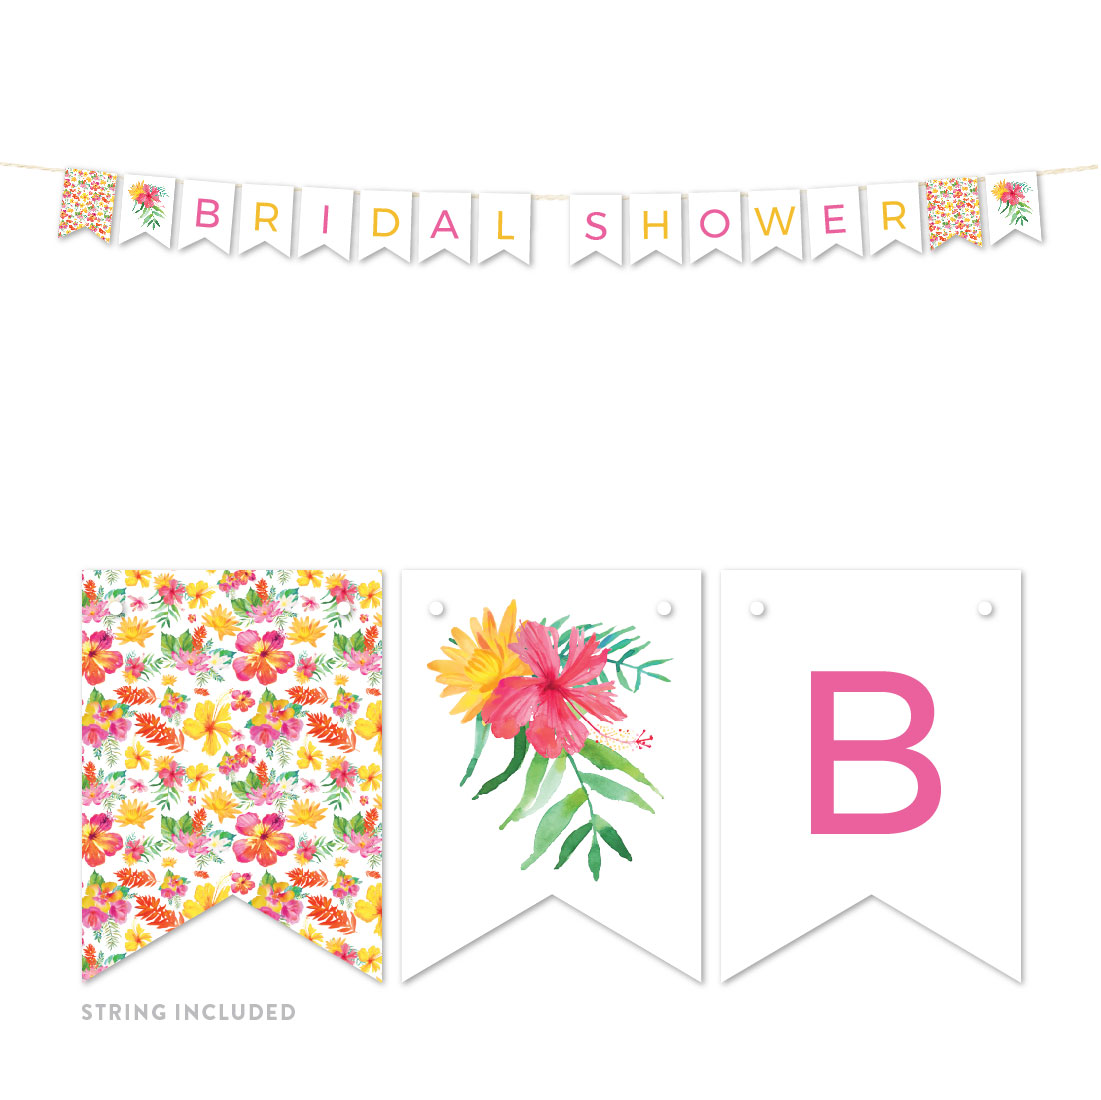 Tropical Floral Garden Party Wedding, Hanging Pennant Party Banner with String, Bridal Shower